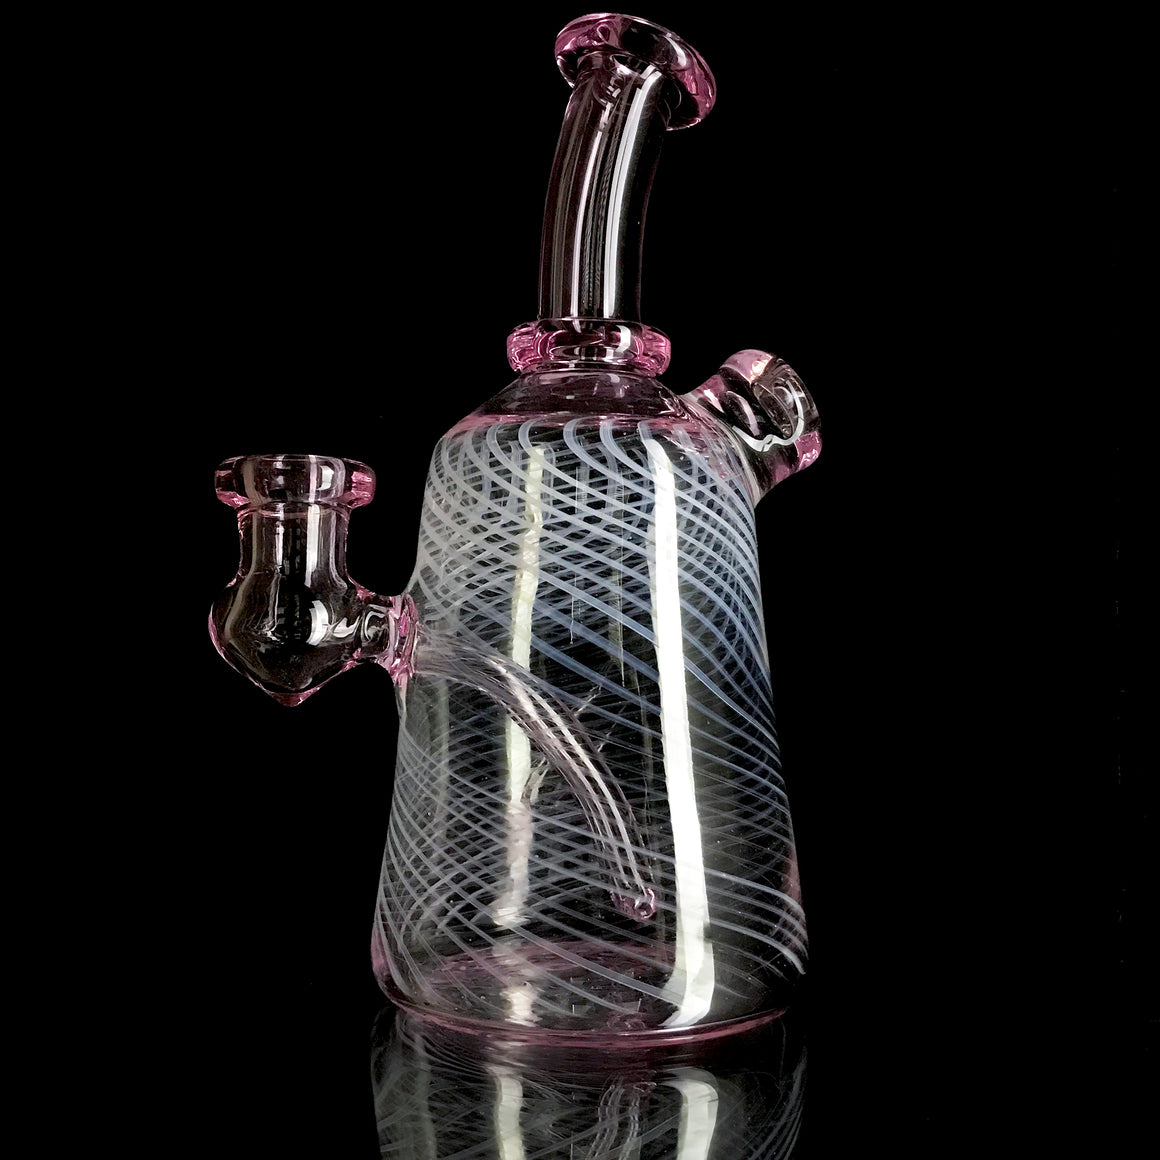 Fully-worked Rig - Transparent Pink/White Retti - 14mm Female